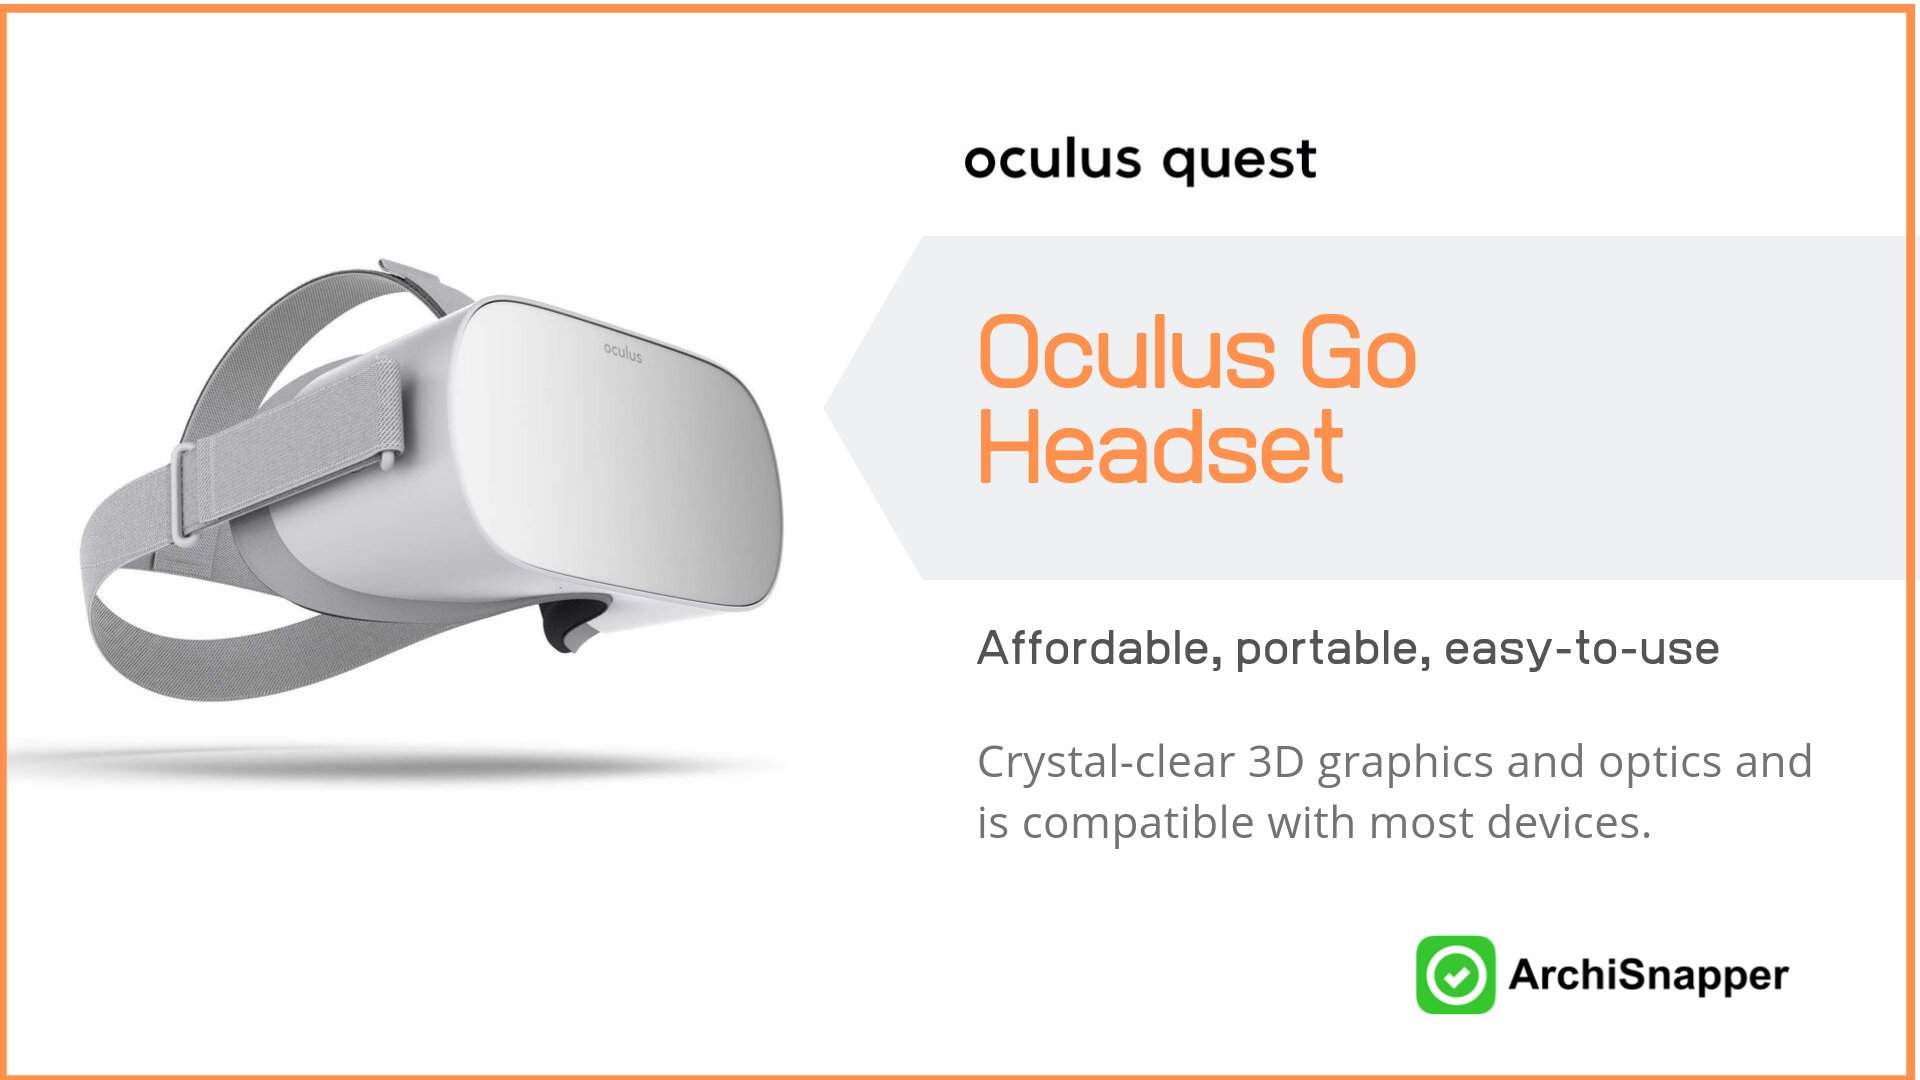 Oculus Go Standalone Virtual Reality Headset | List of the 15 must-have tech tools and accessories ideal for architects presented by Archisnapper